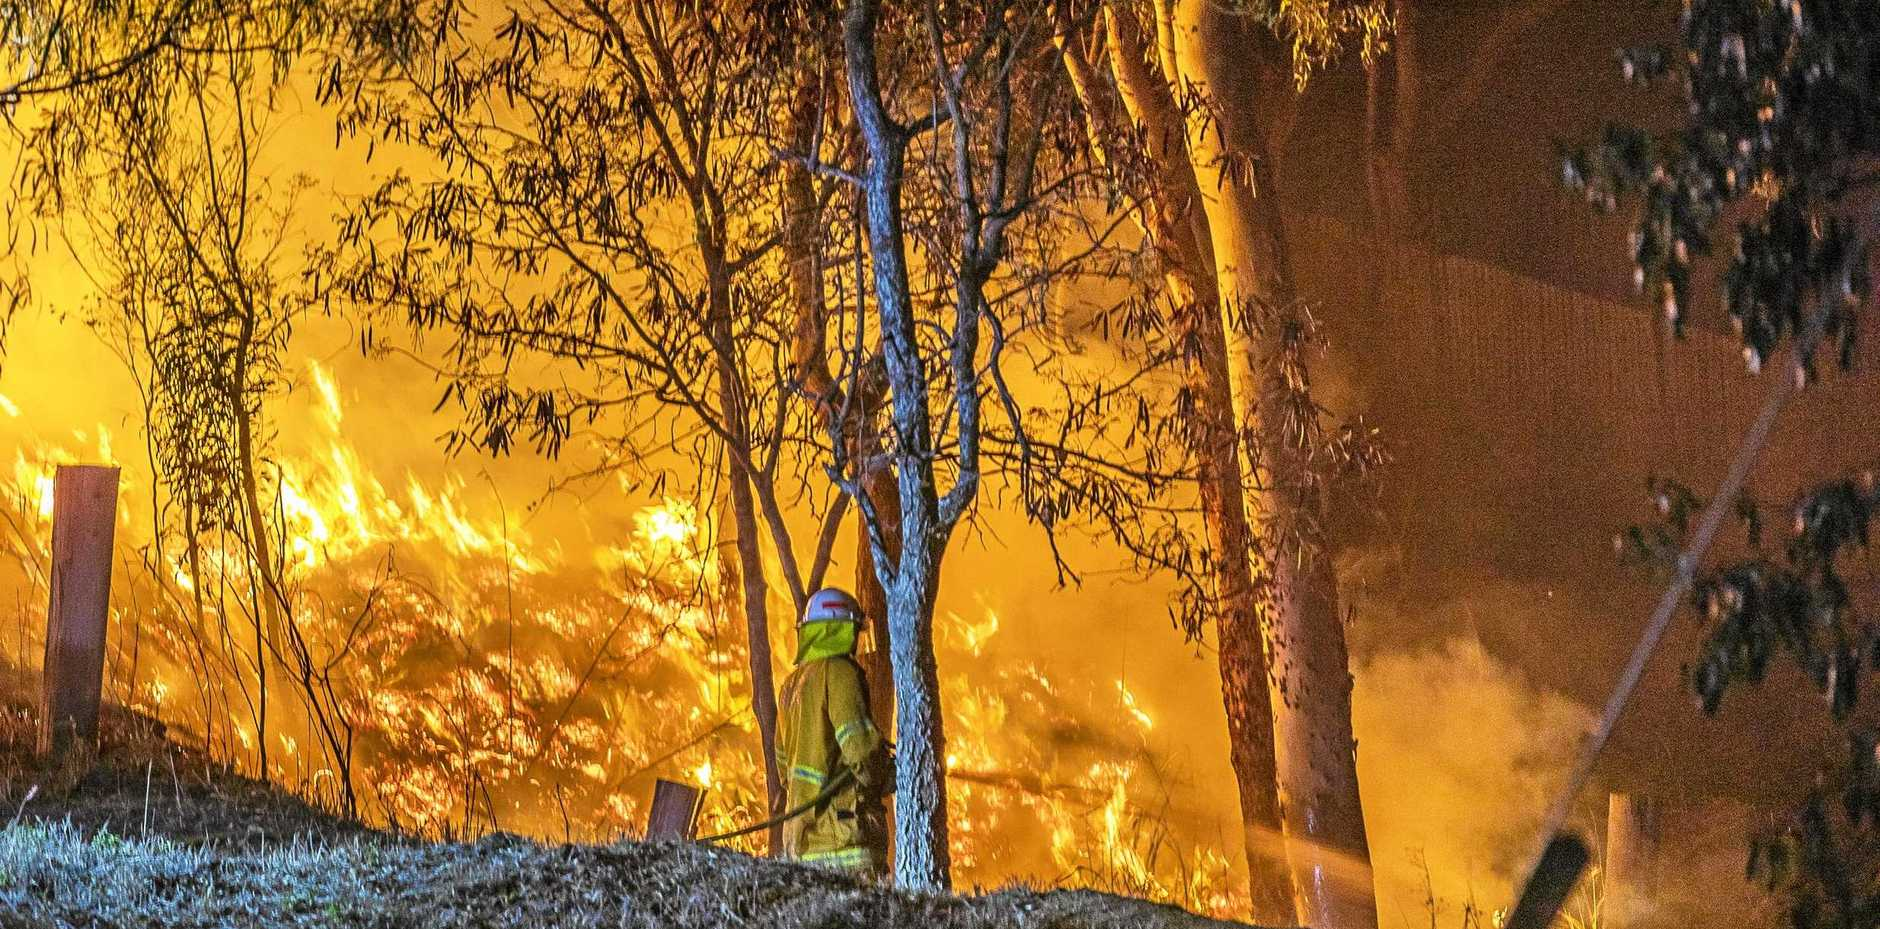 More than 70 fires are raging across Queensland.